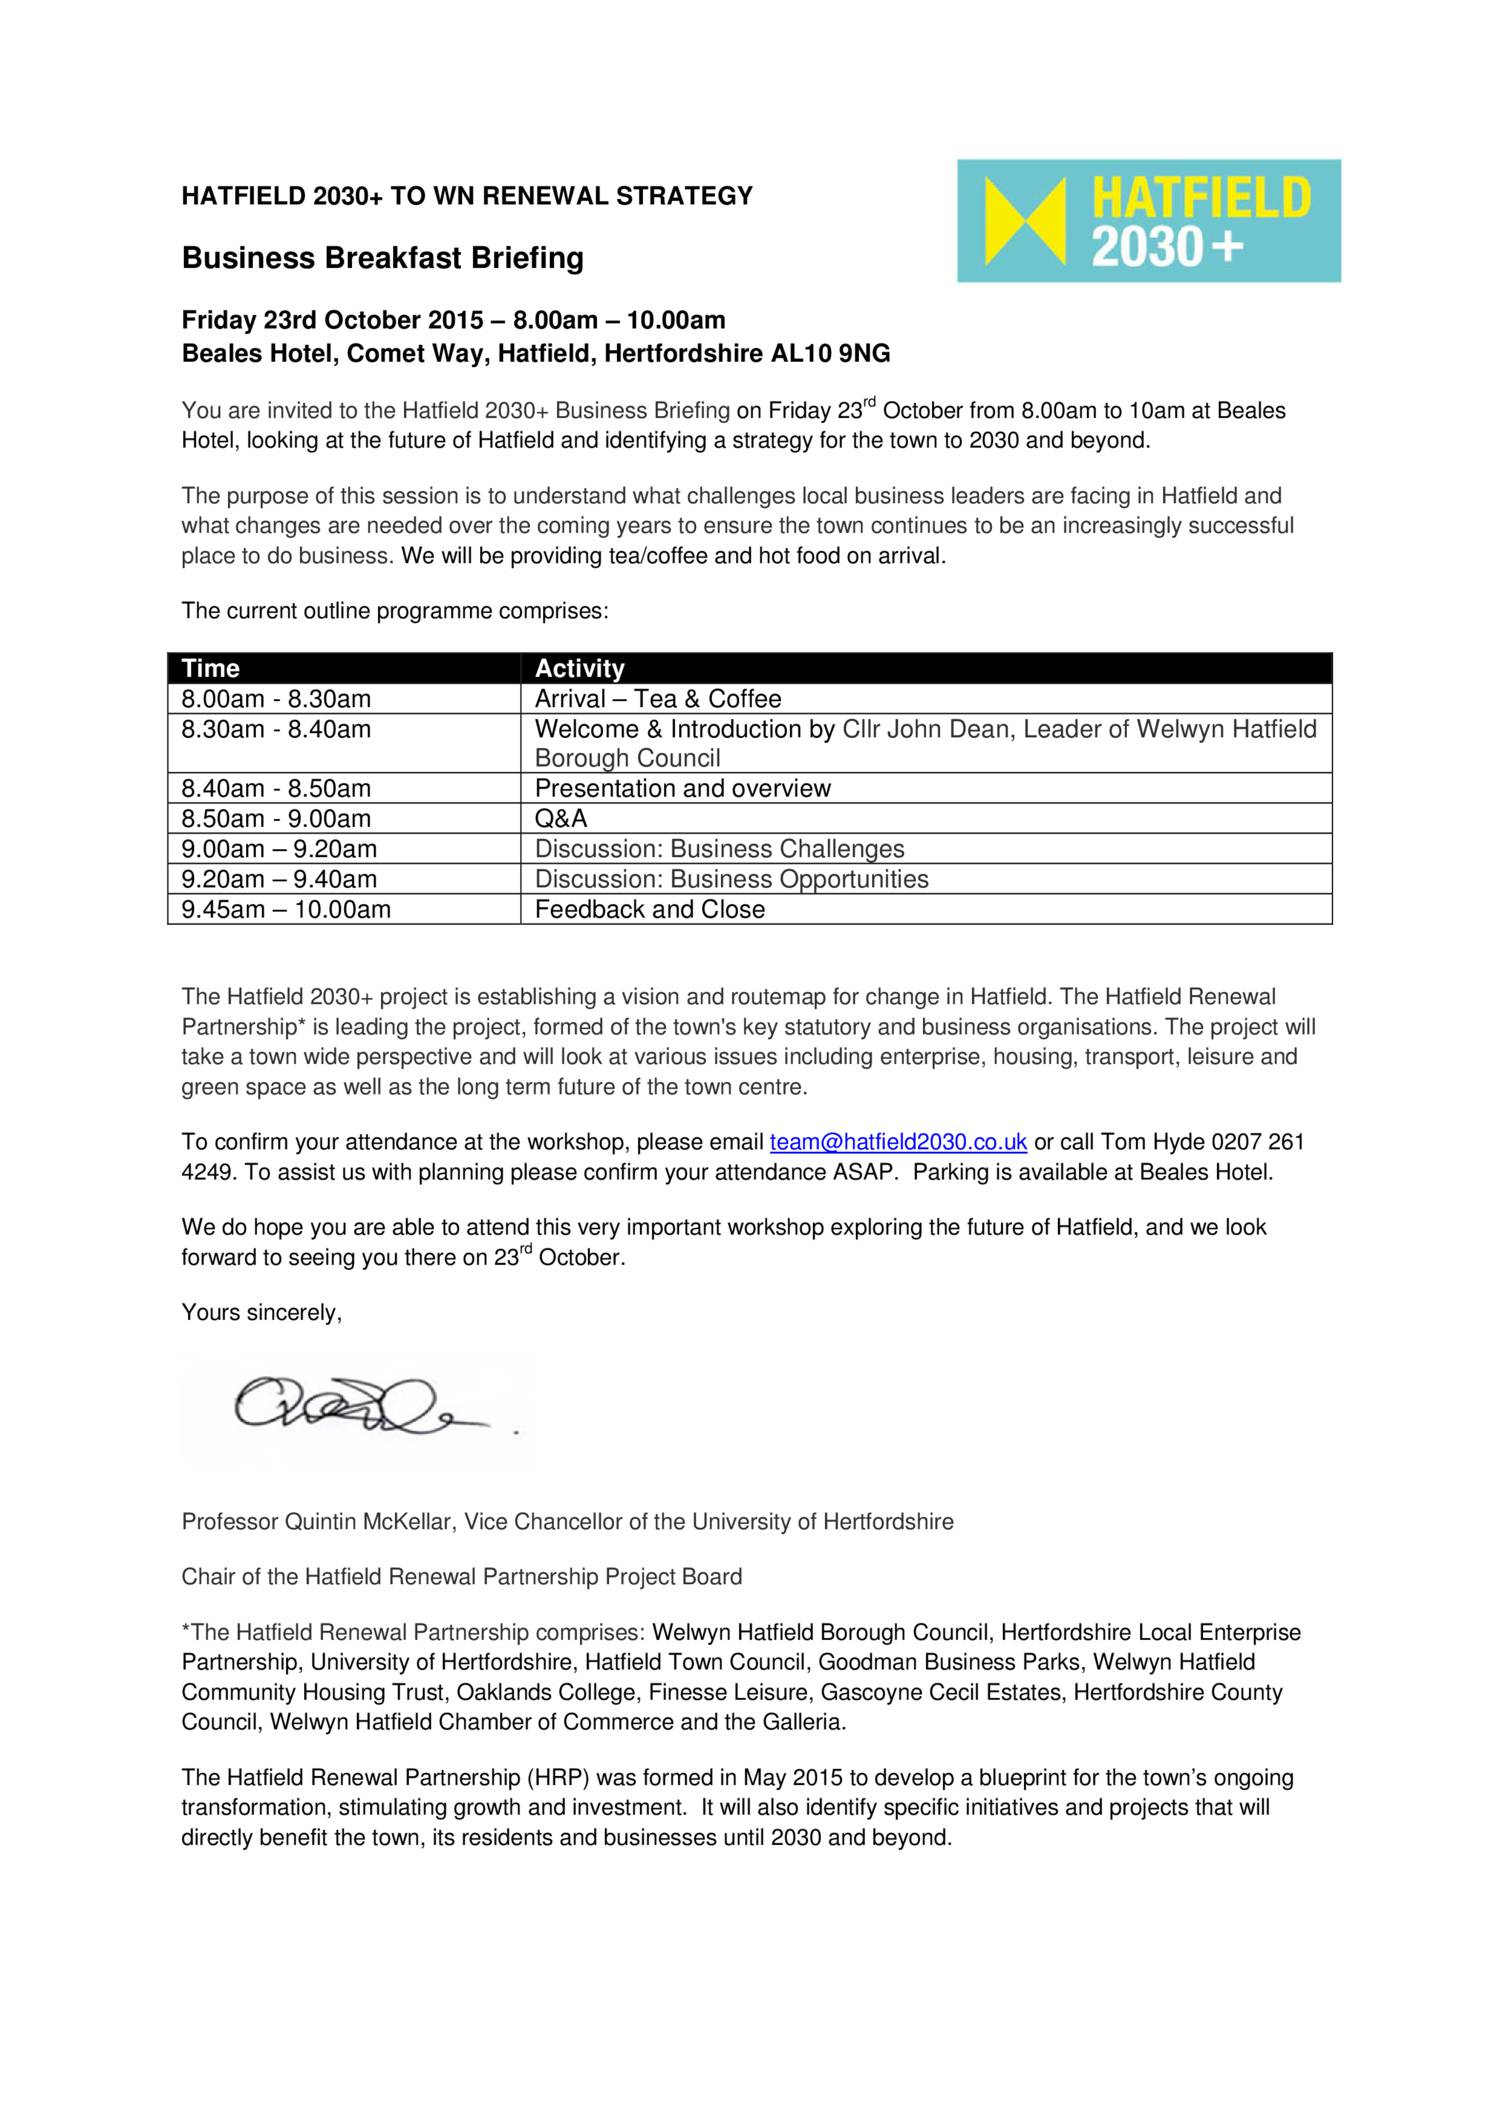 Business breakfast invitation letterpdf docdroid stopboris Gallery